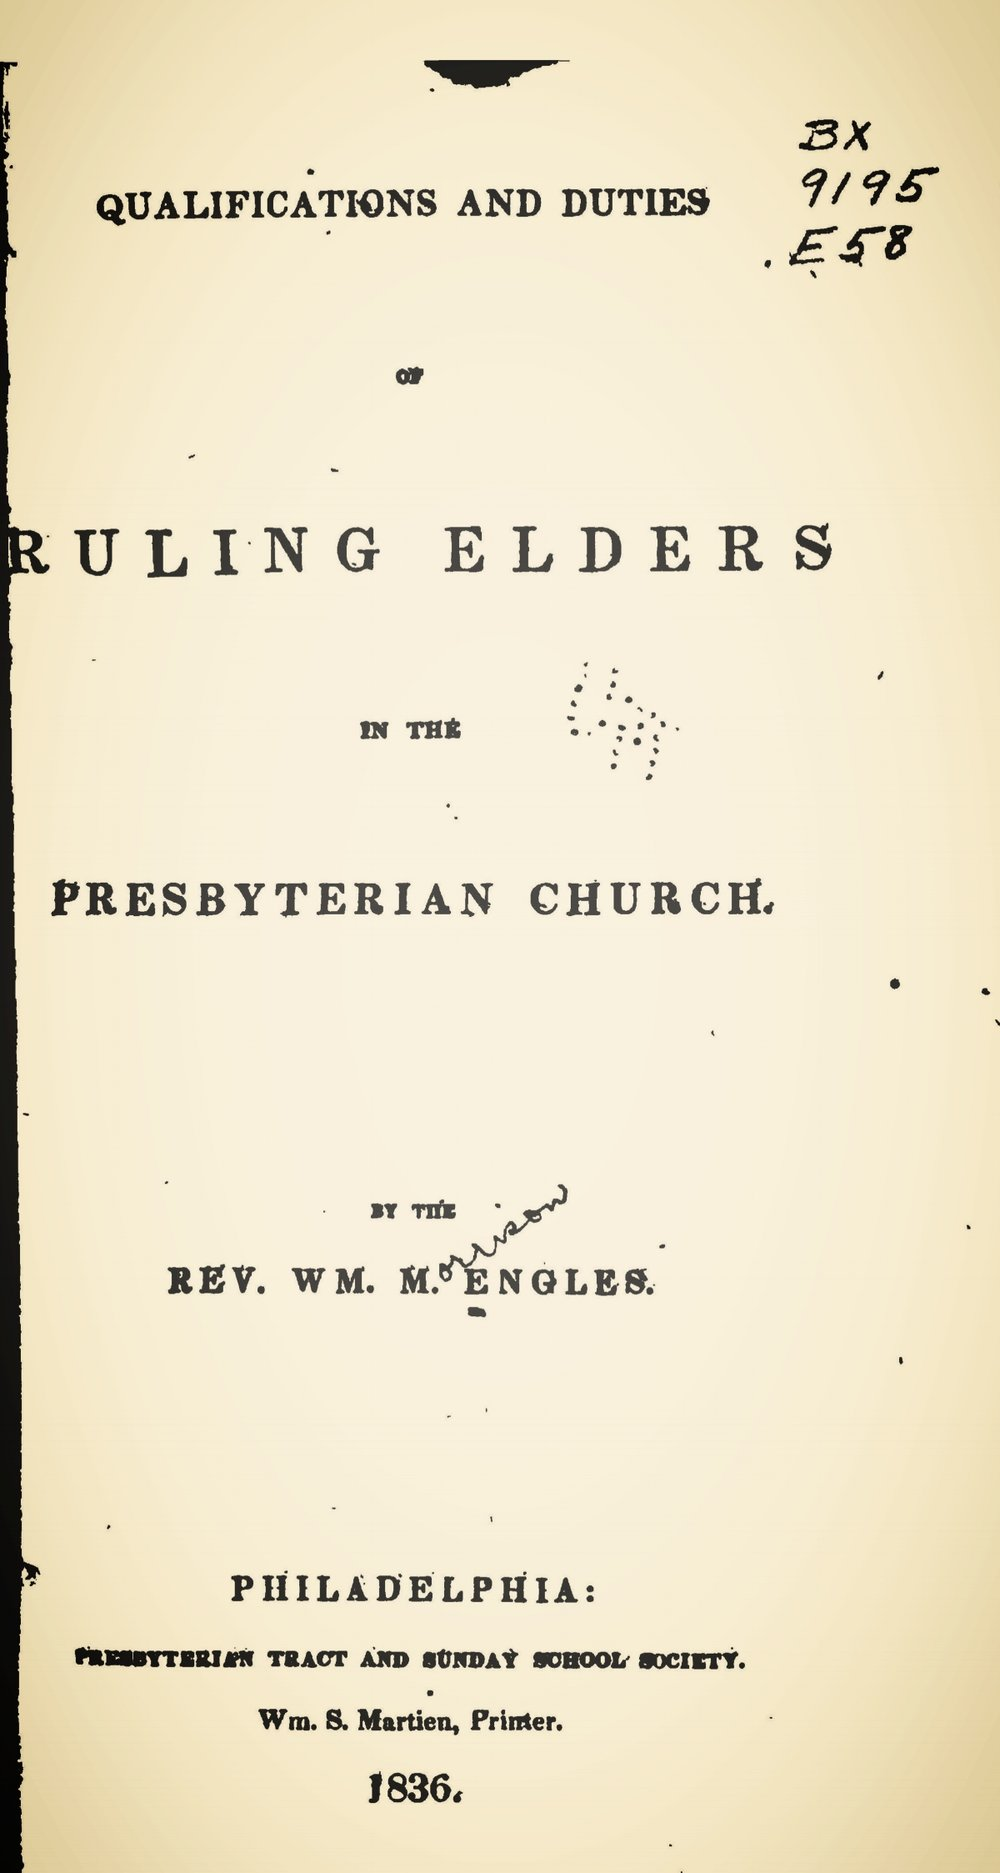 Engles, William Morrison, Qualifications and Duties of Ruling Elders in the Presbyterian Church Title Page.jpg